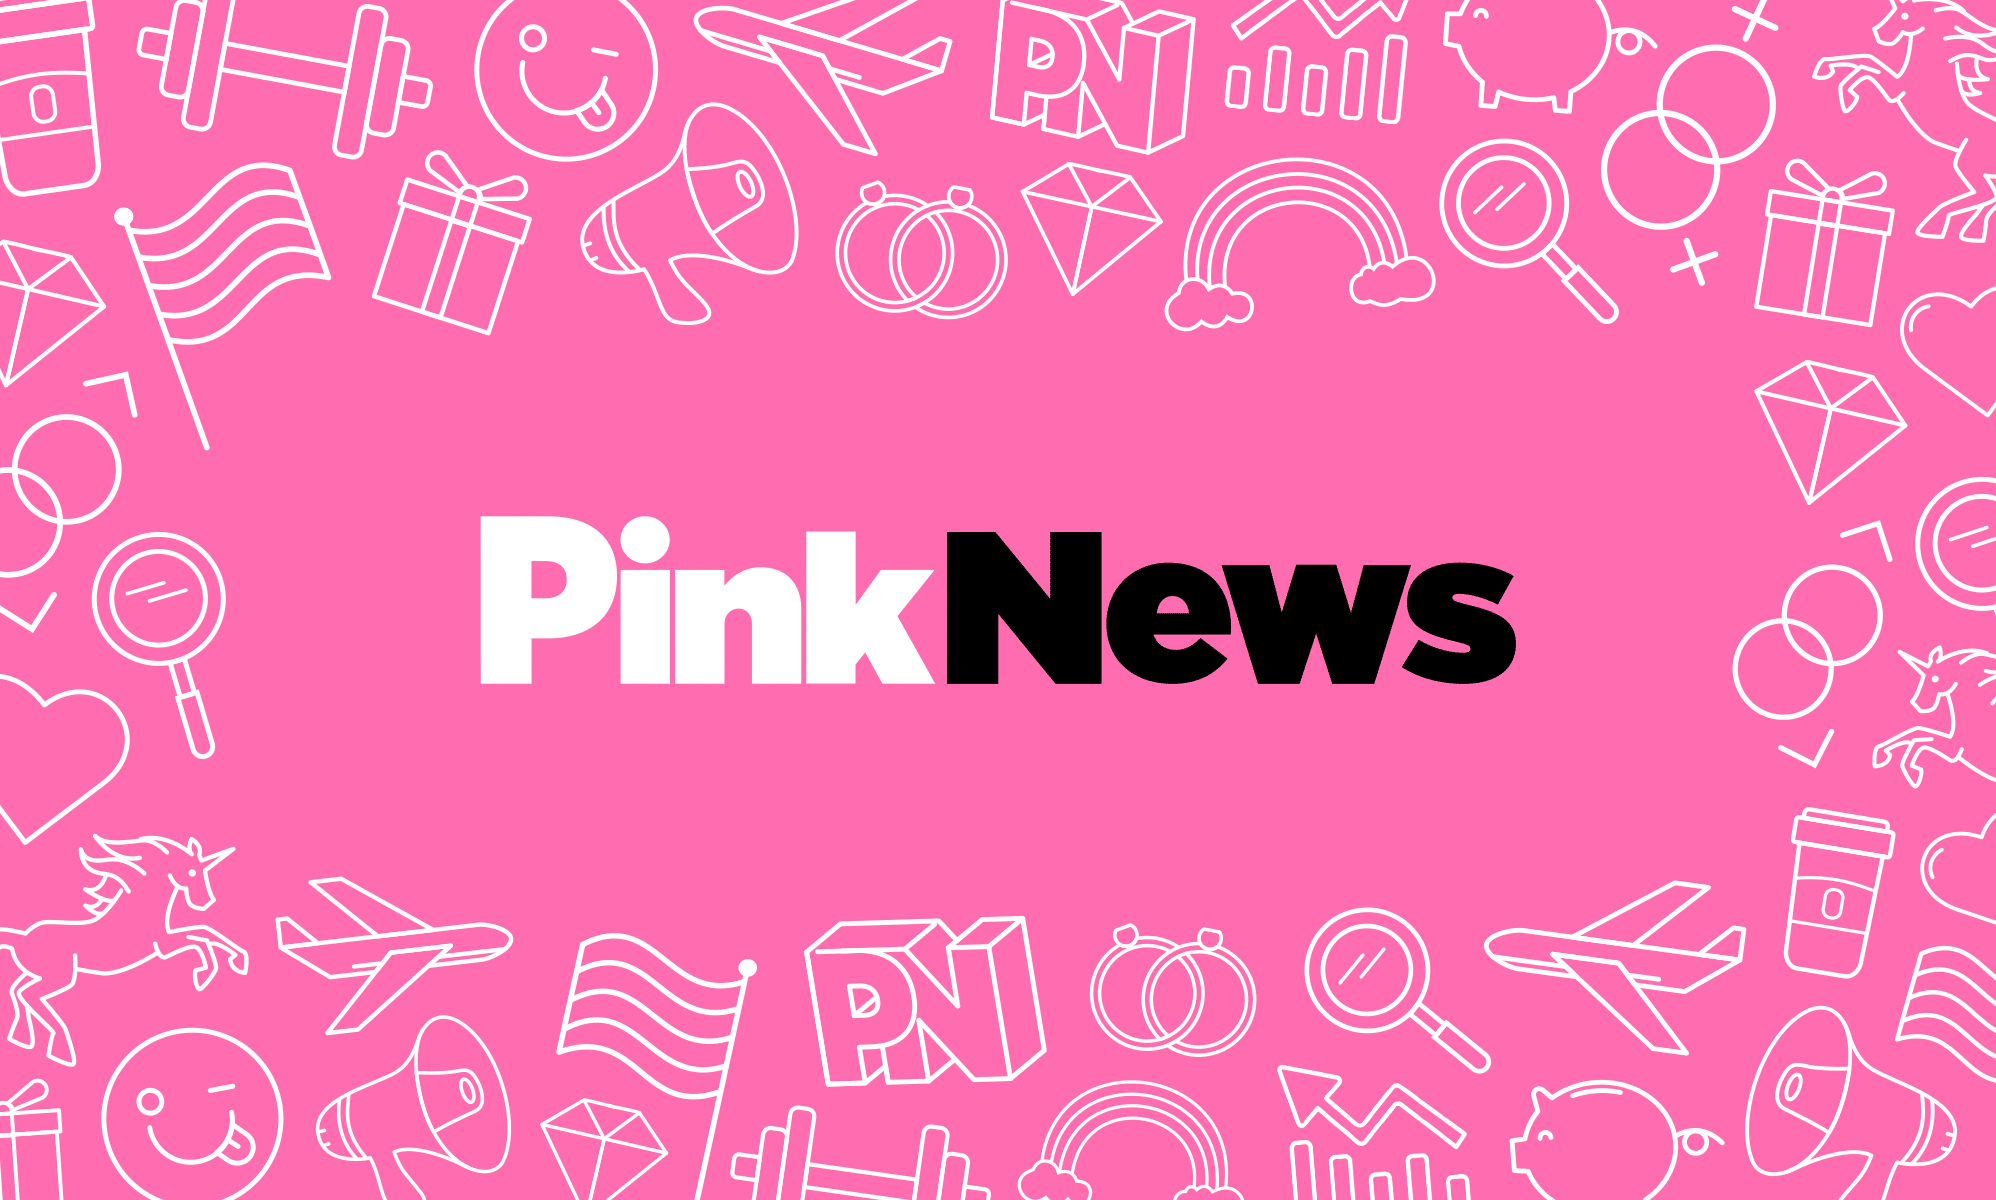 Buckingham Palace uses PinkNews article to claim Queen didn't oppose same-sex marriage